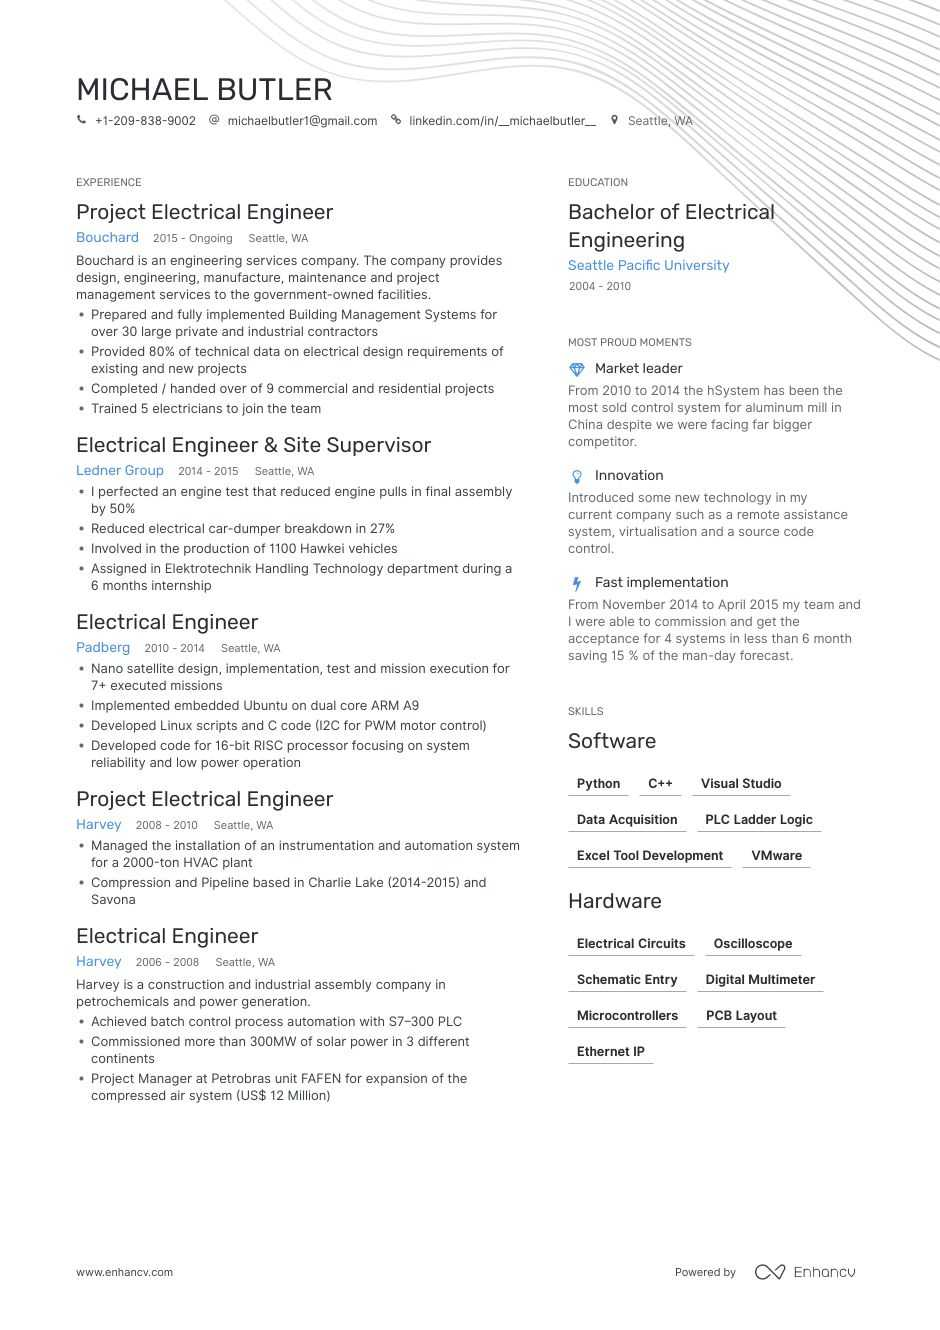 electrical engineer resume examples pro tips featured enhancv car statements engineering Resume Car Statements Resume Examples